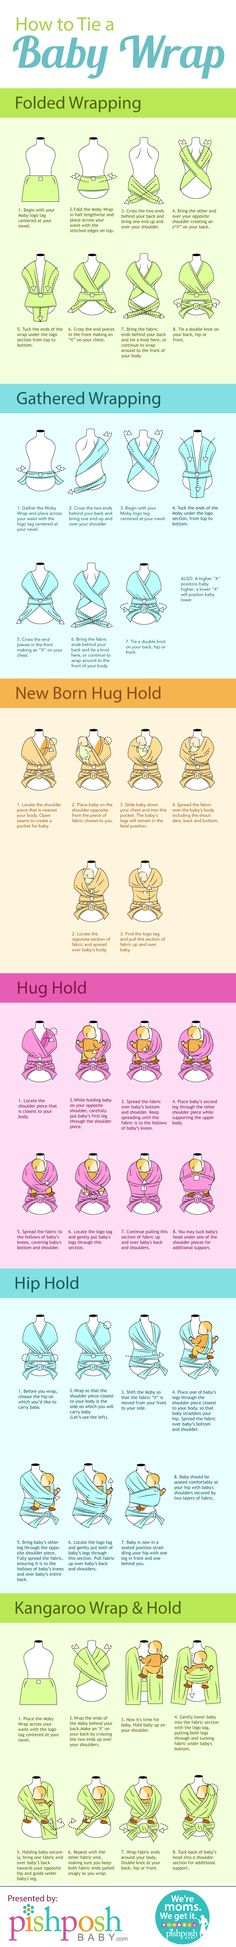 How to Tie a Baby Wrap [by PishPosh Baby -- via Tipsographic] #tipsographic